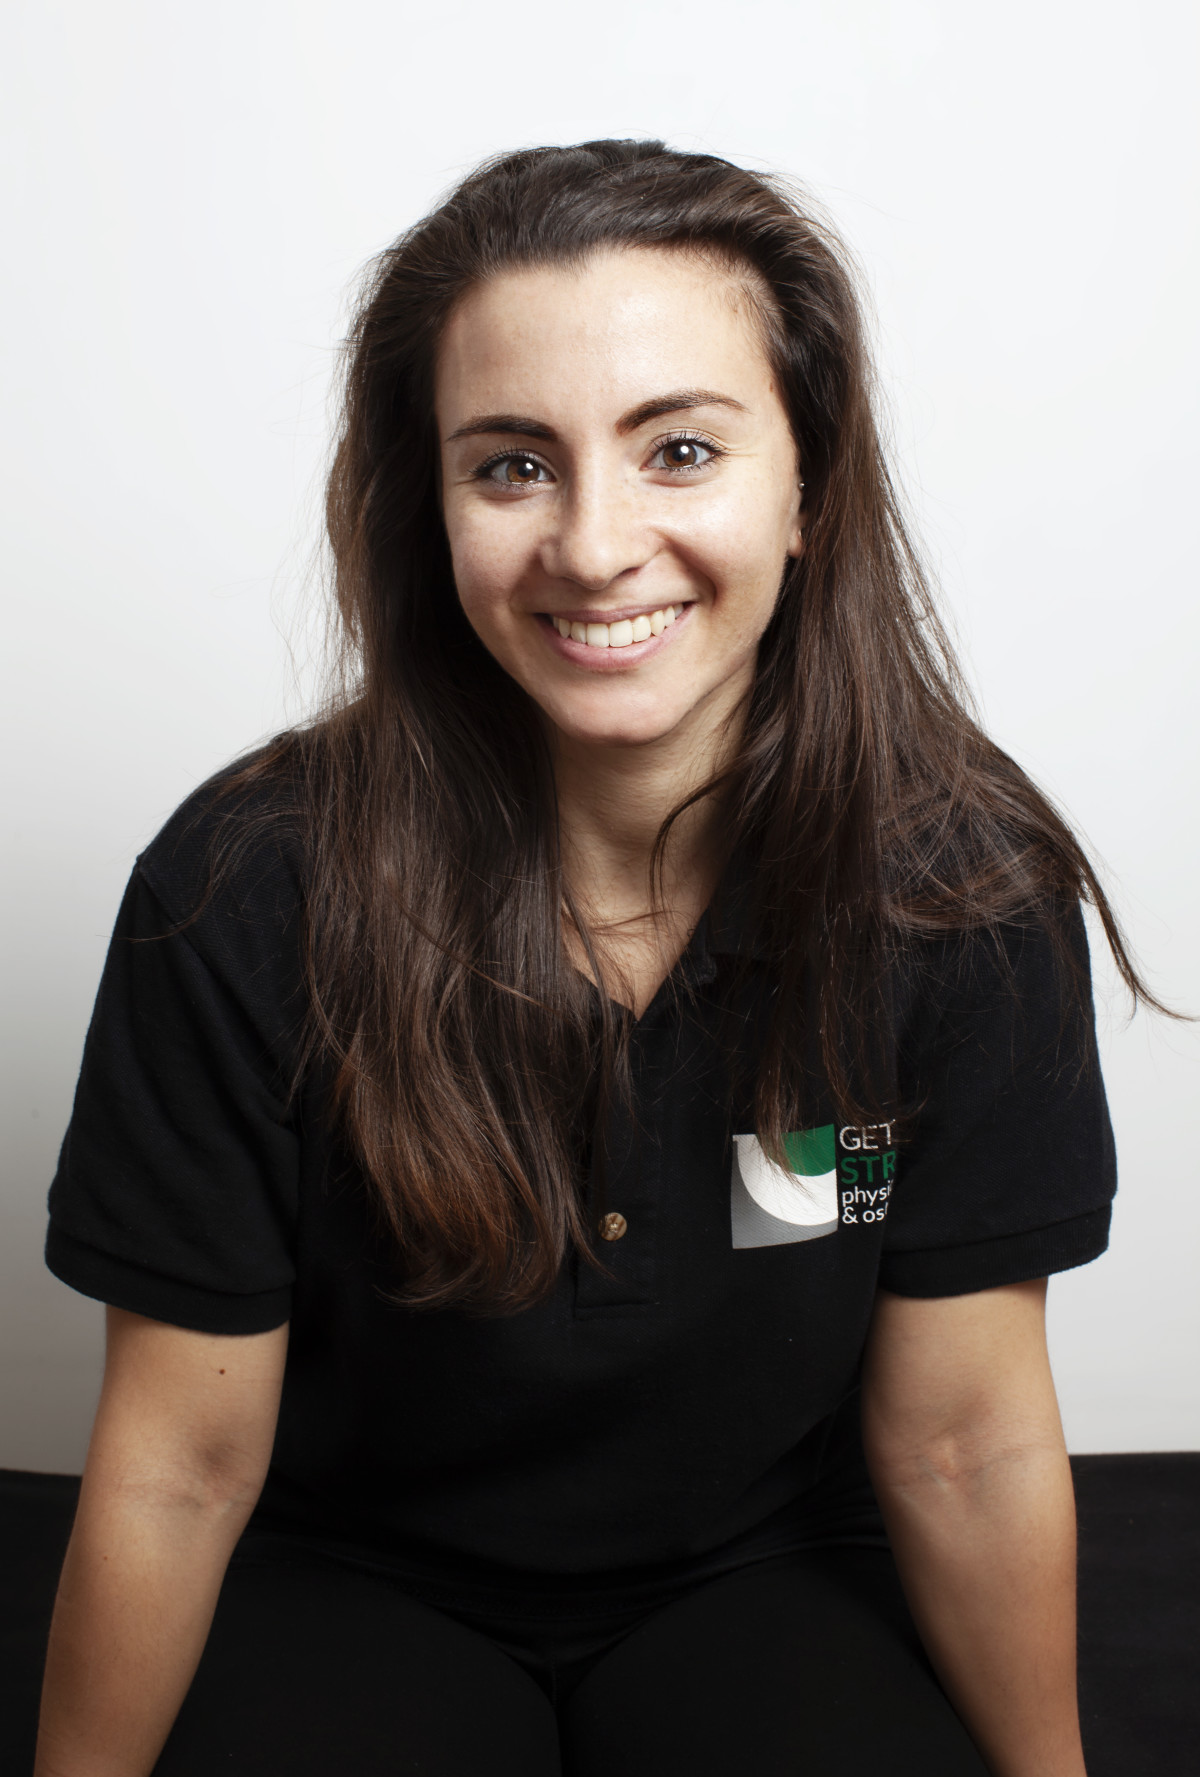 Your local osteopath in Kew that has a speciality in sports massage, treating newborns, expectant mothers and postpartum disorders.